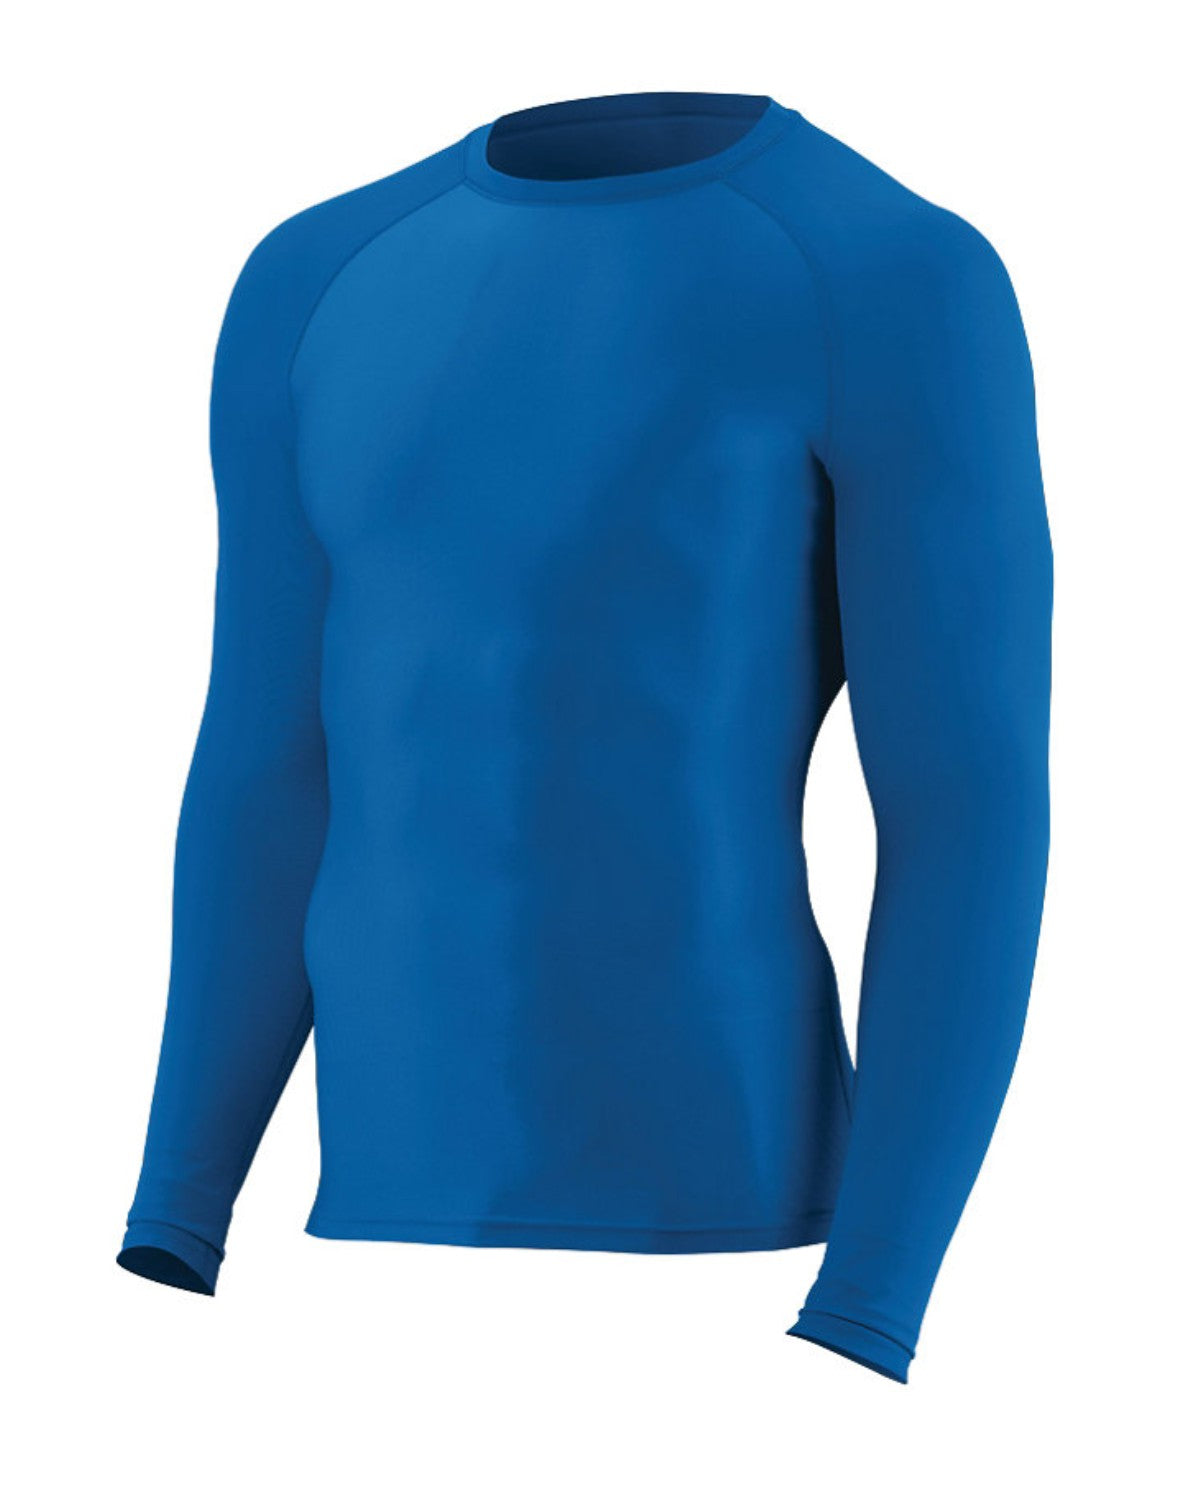 Badger Long Sleeve Compression Shirt